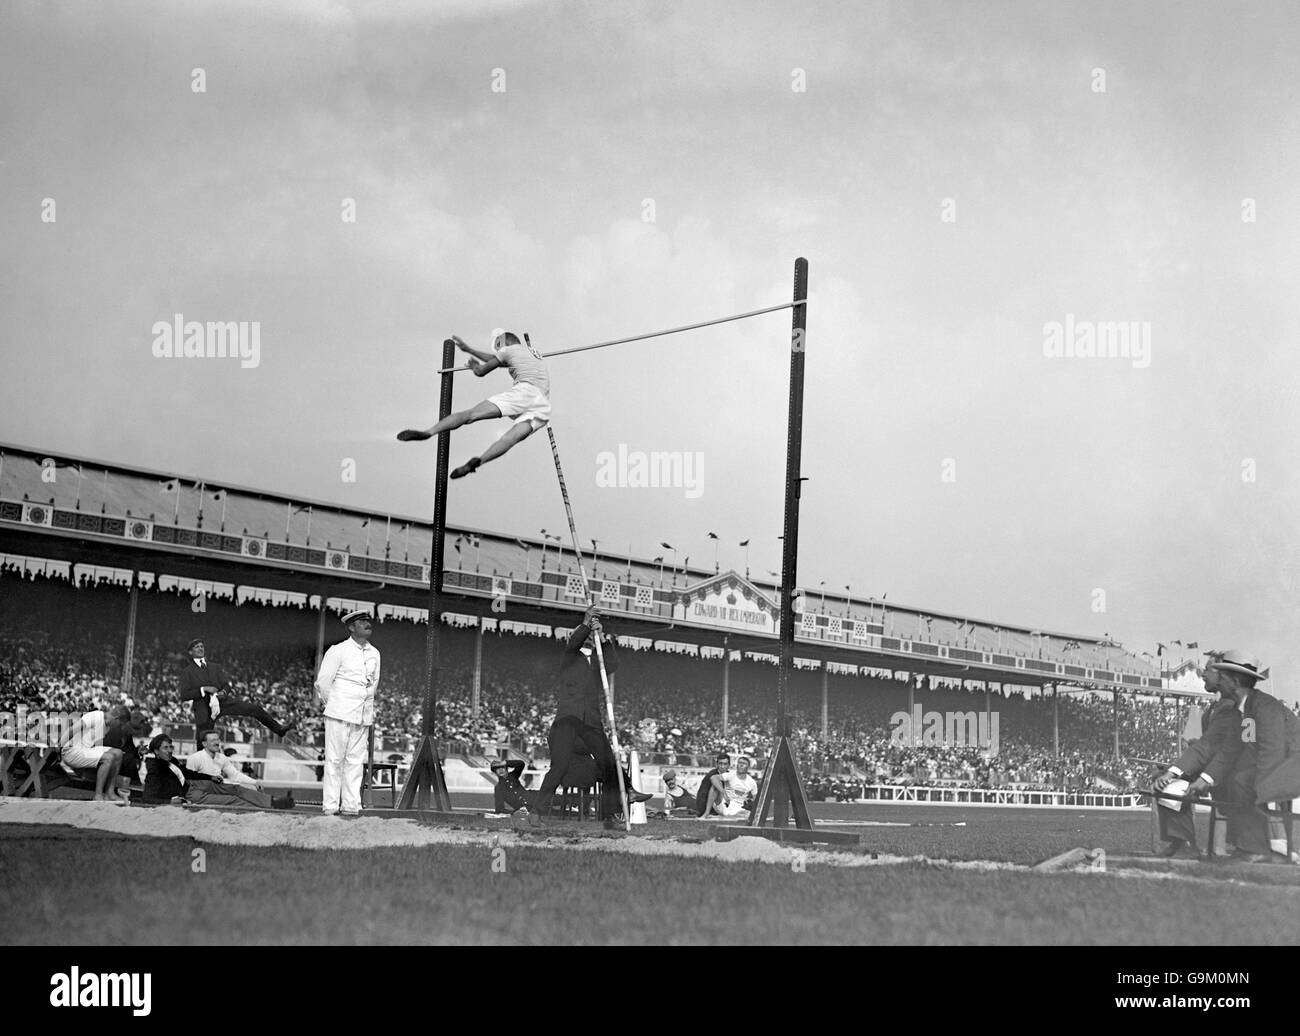 Athletics - London Olympic Games 1908 - Pole Vault - Final - White City Stock Photo